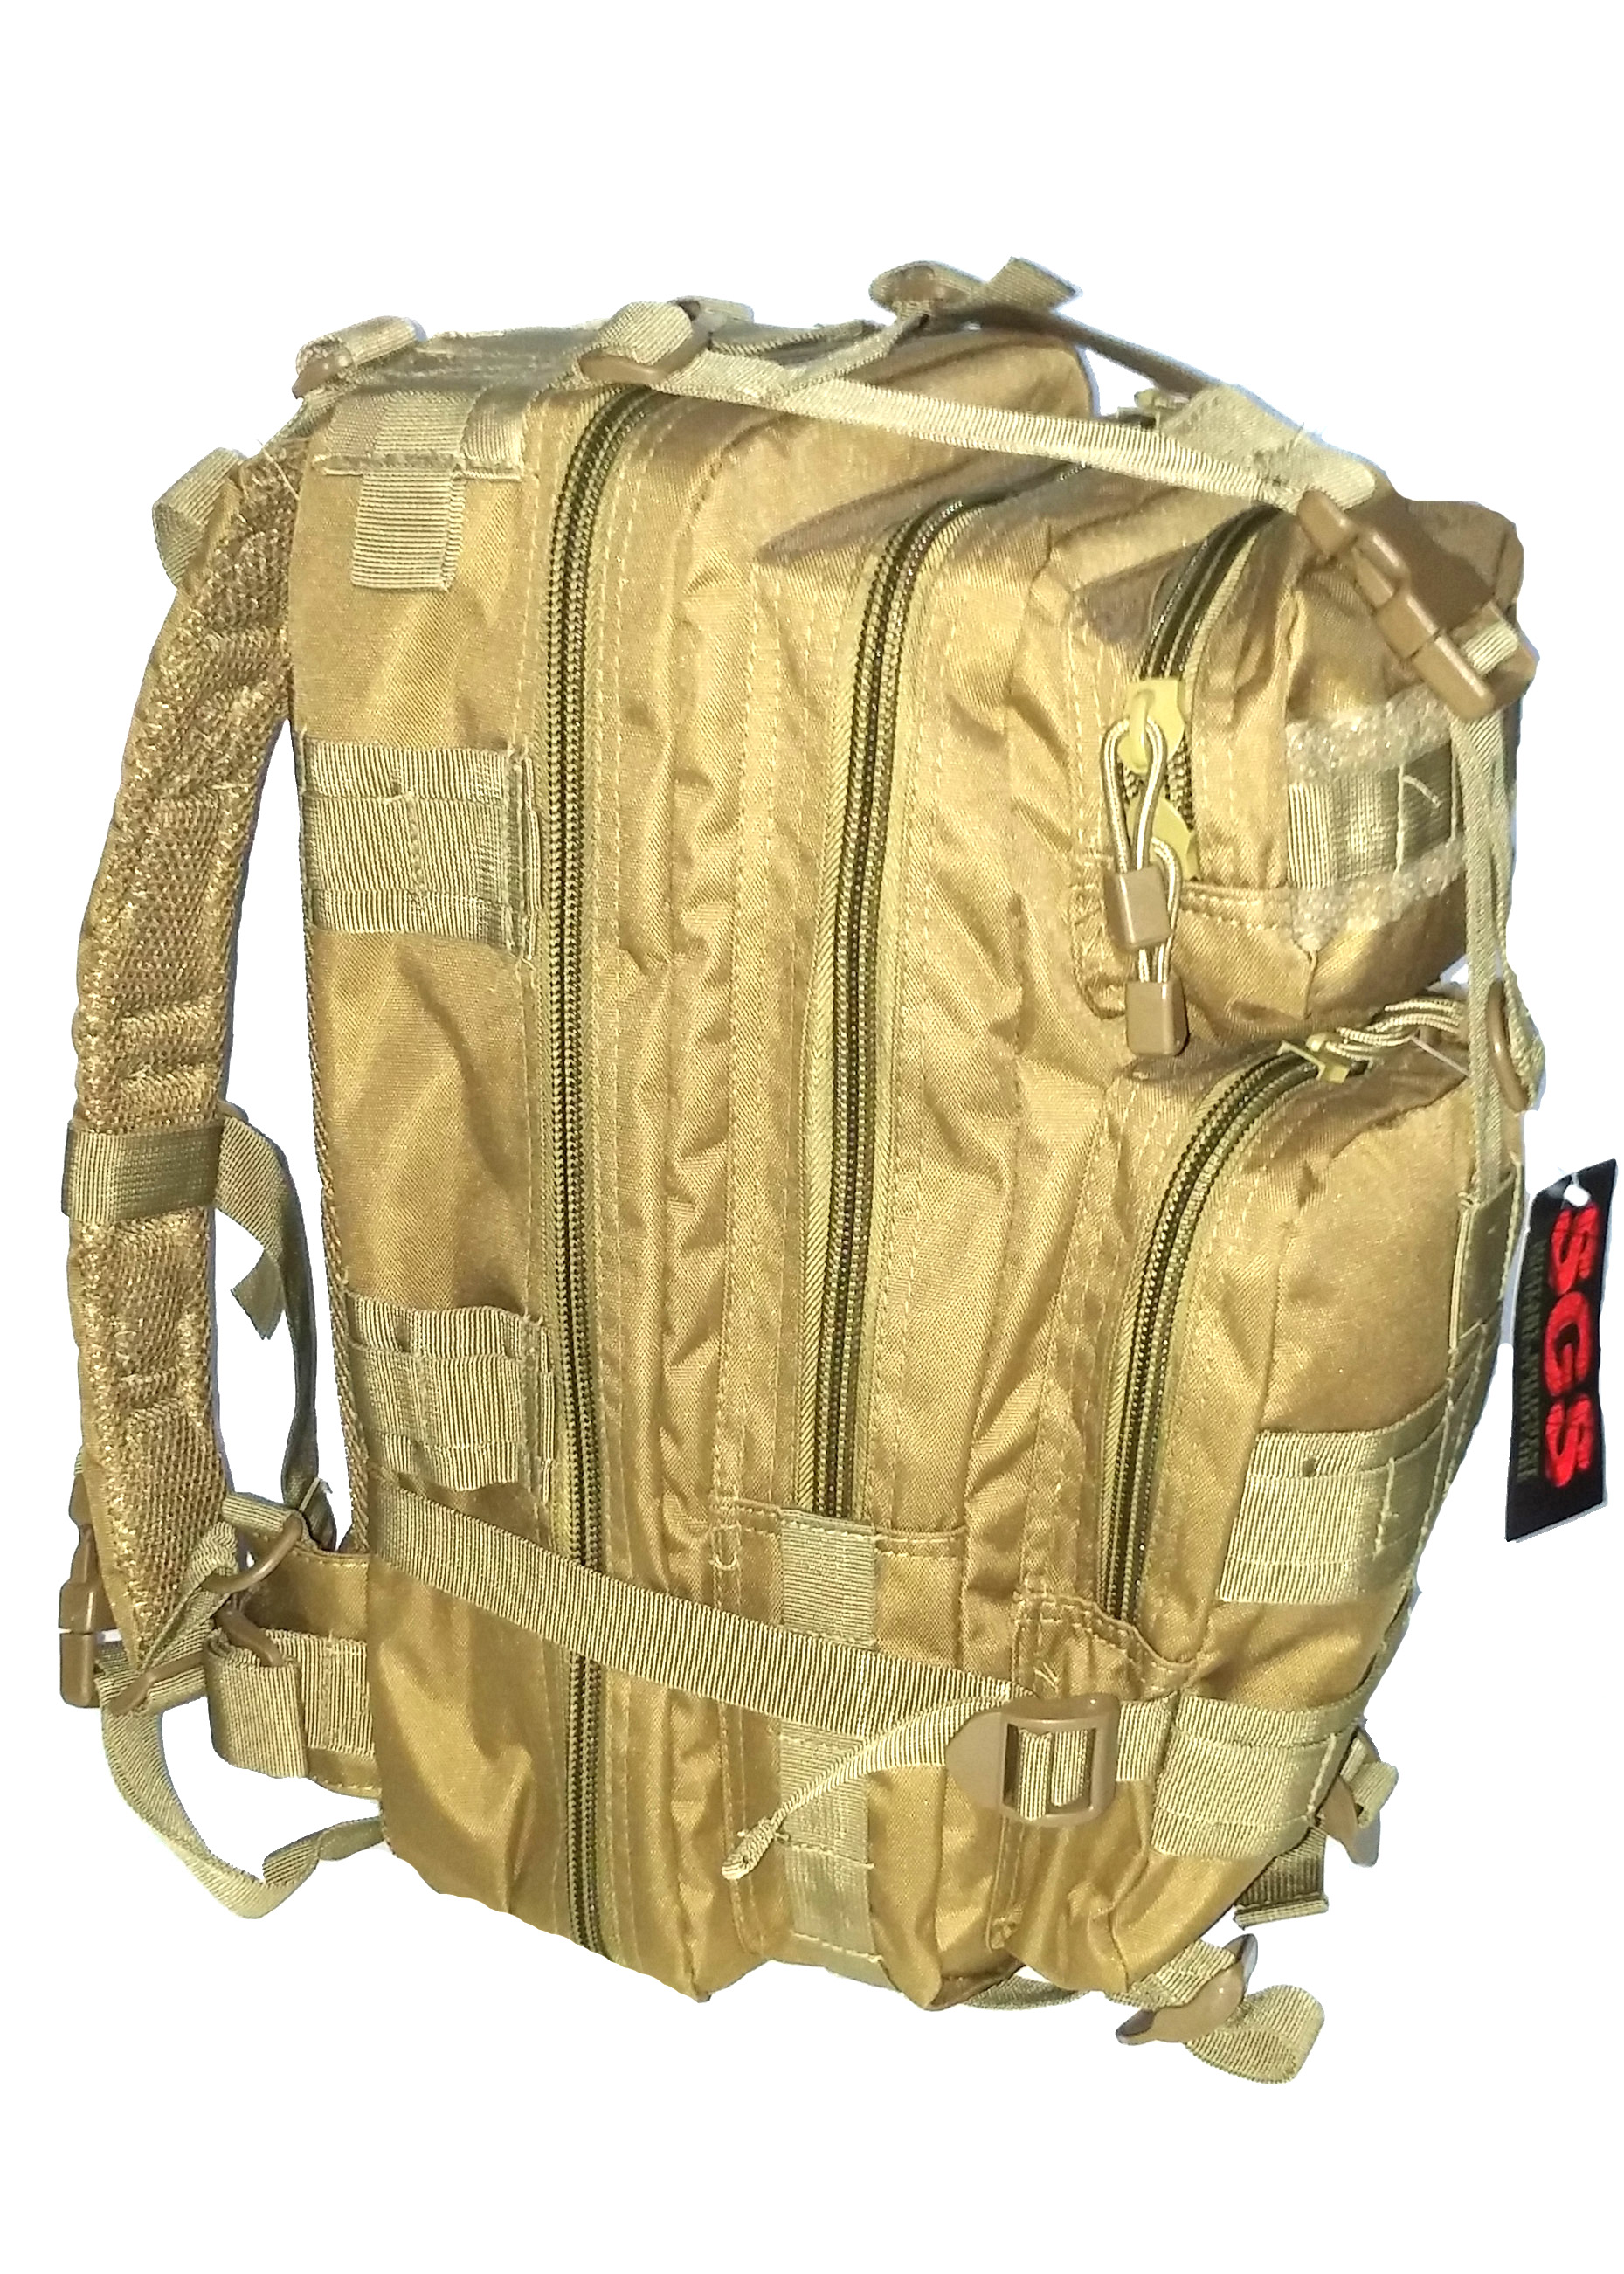 SGS Coyote tactical assault pack